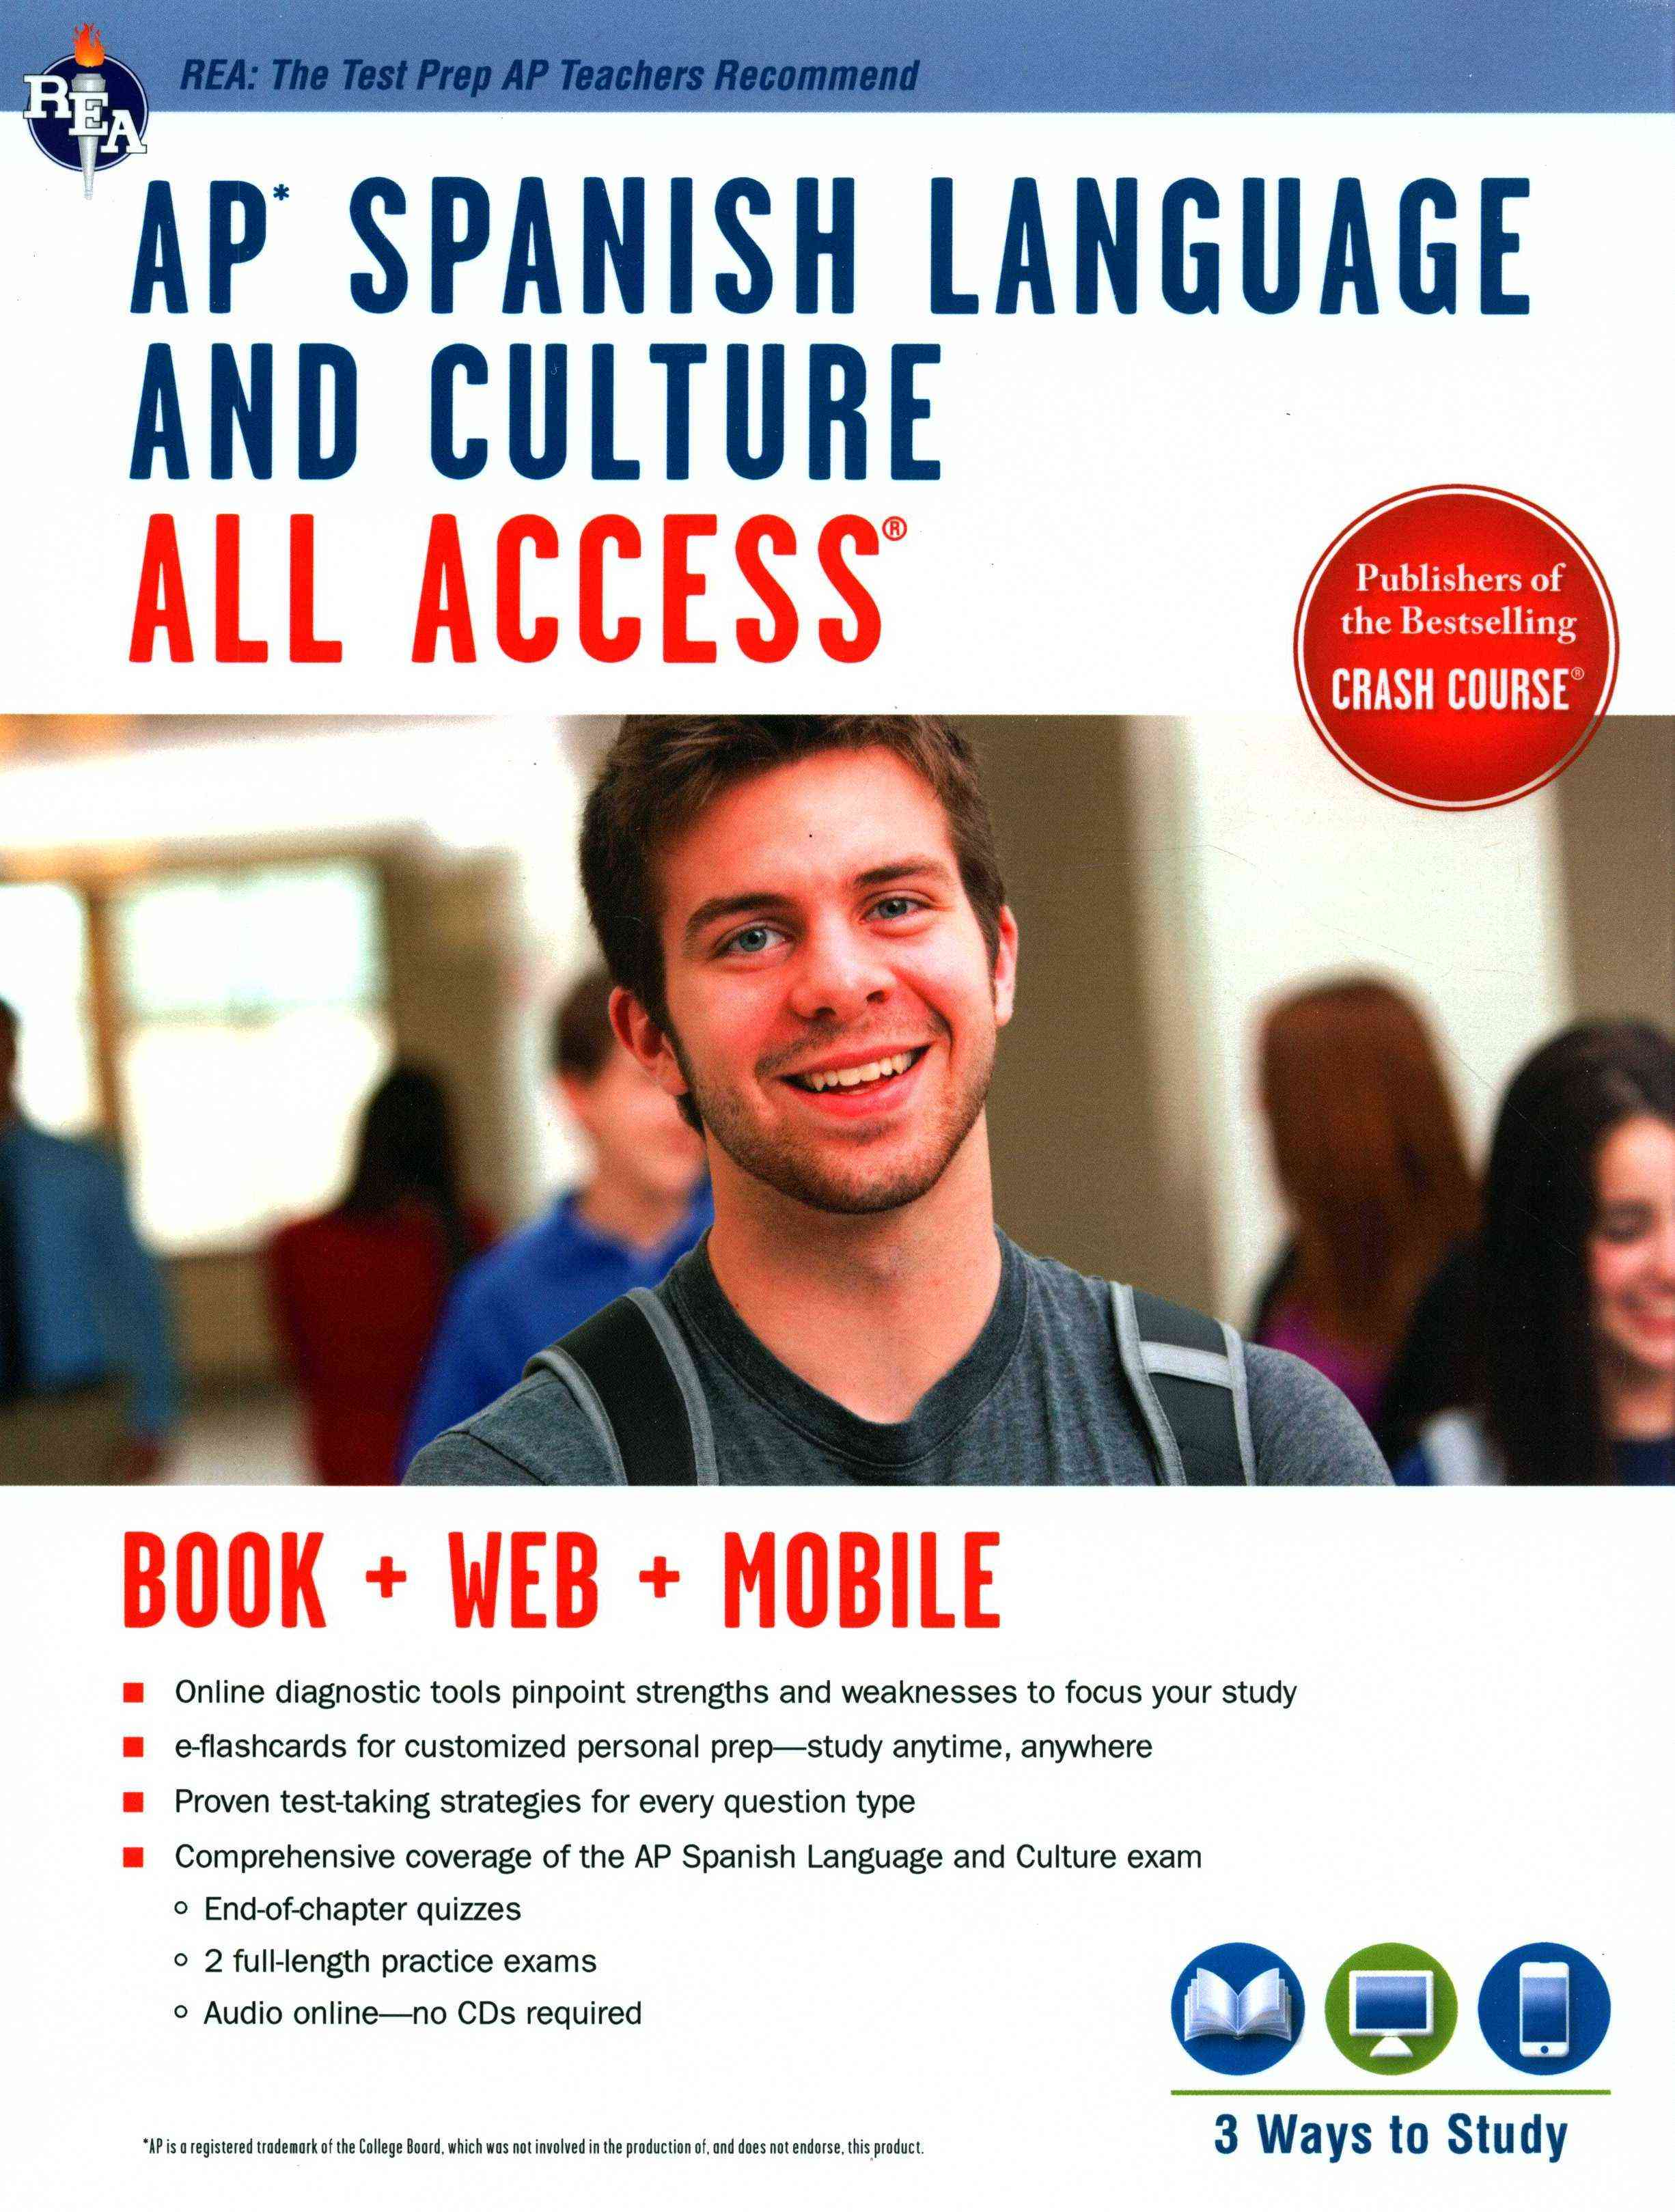 Rea Ap Spanish Language and Culture All Access By Research and Education Association